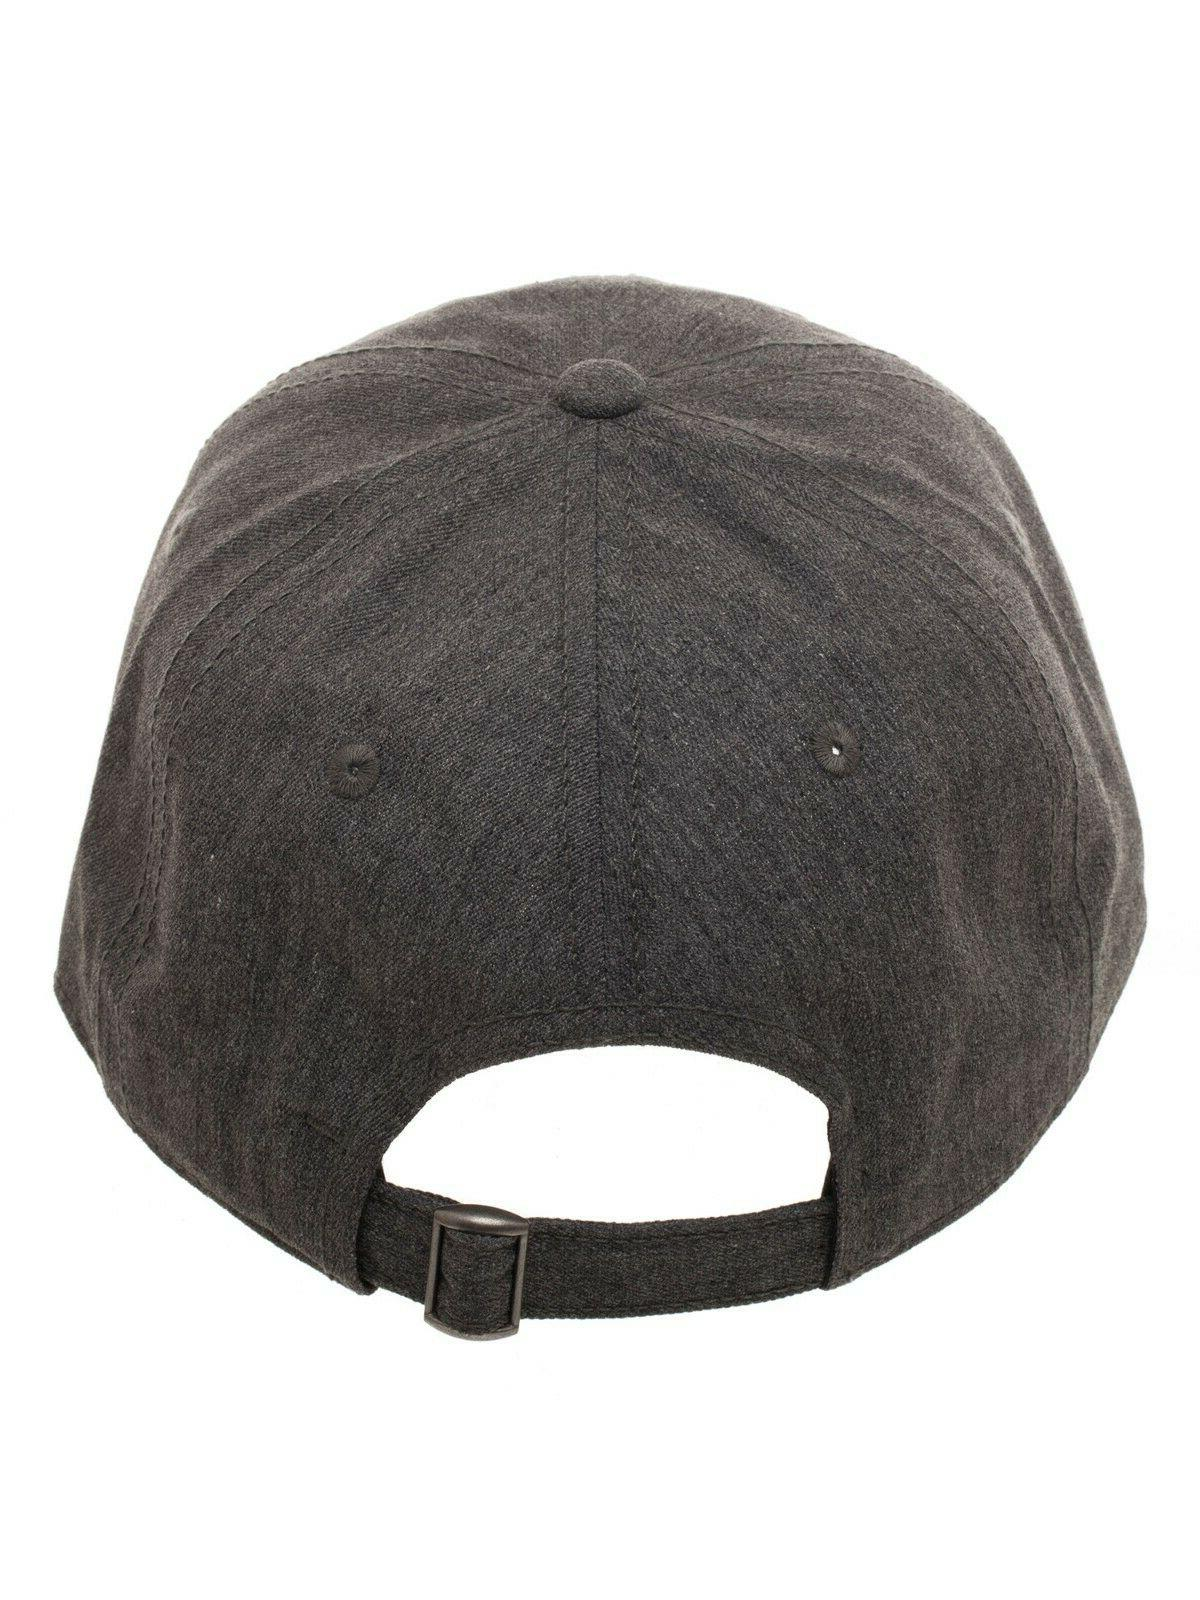 Bioworld Harry Chibi Chambray Hat Cap